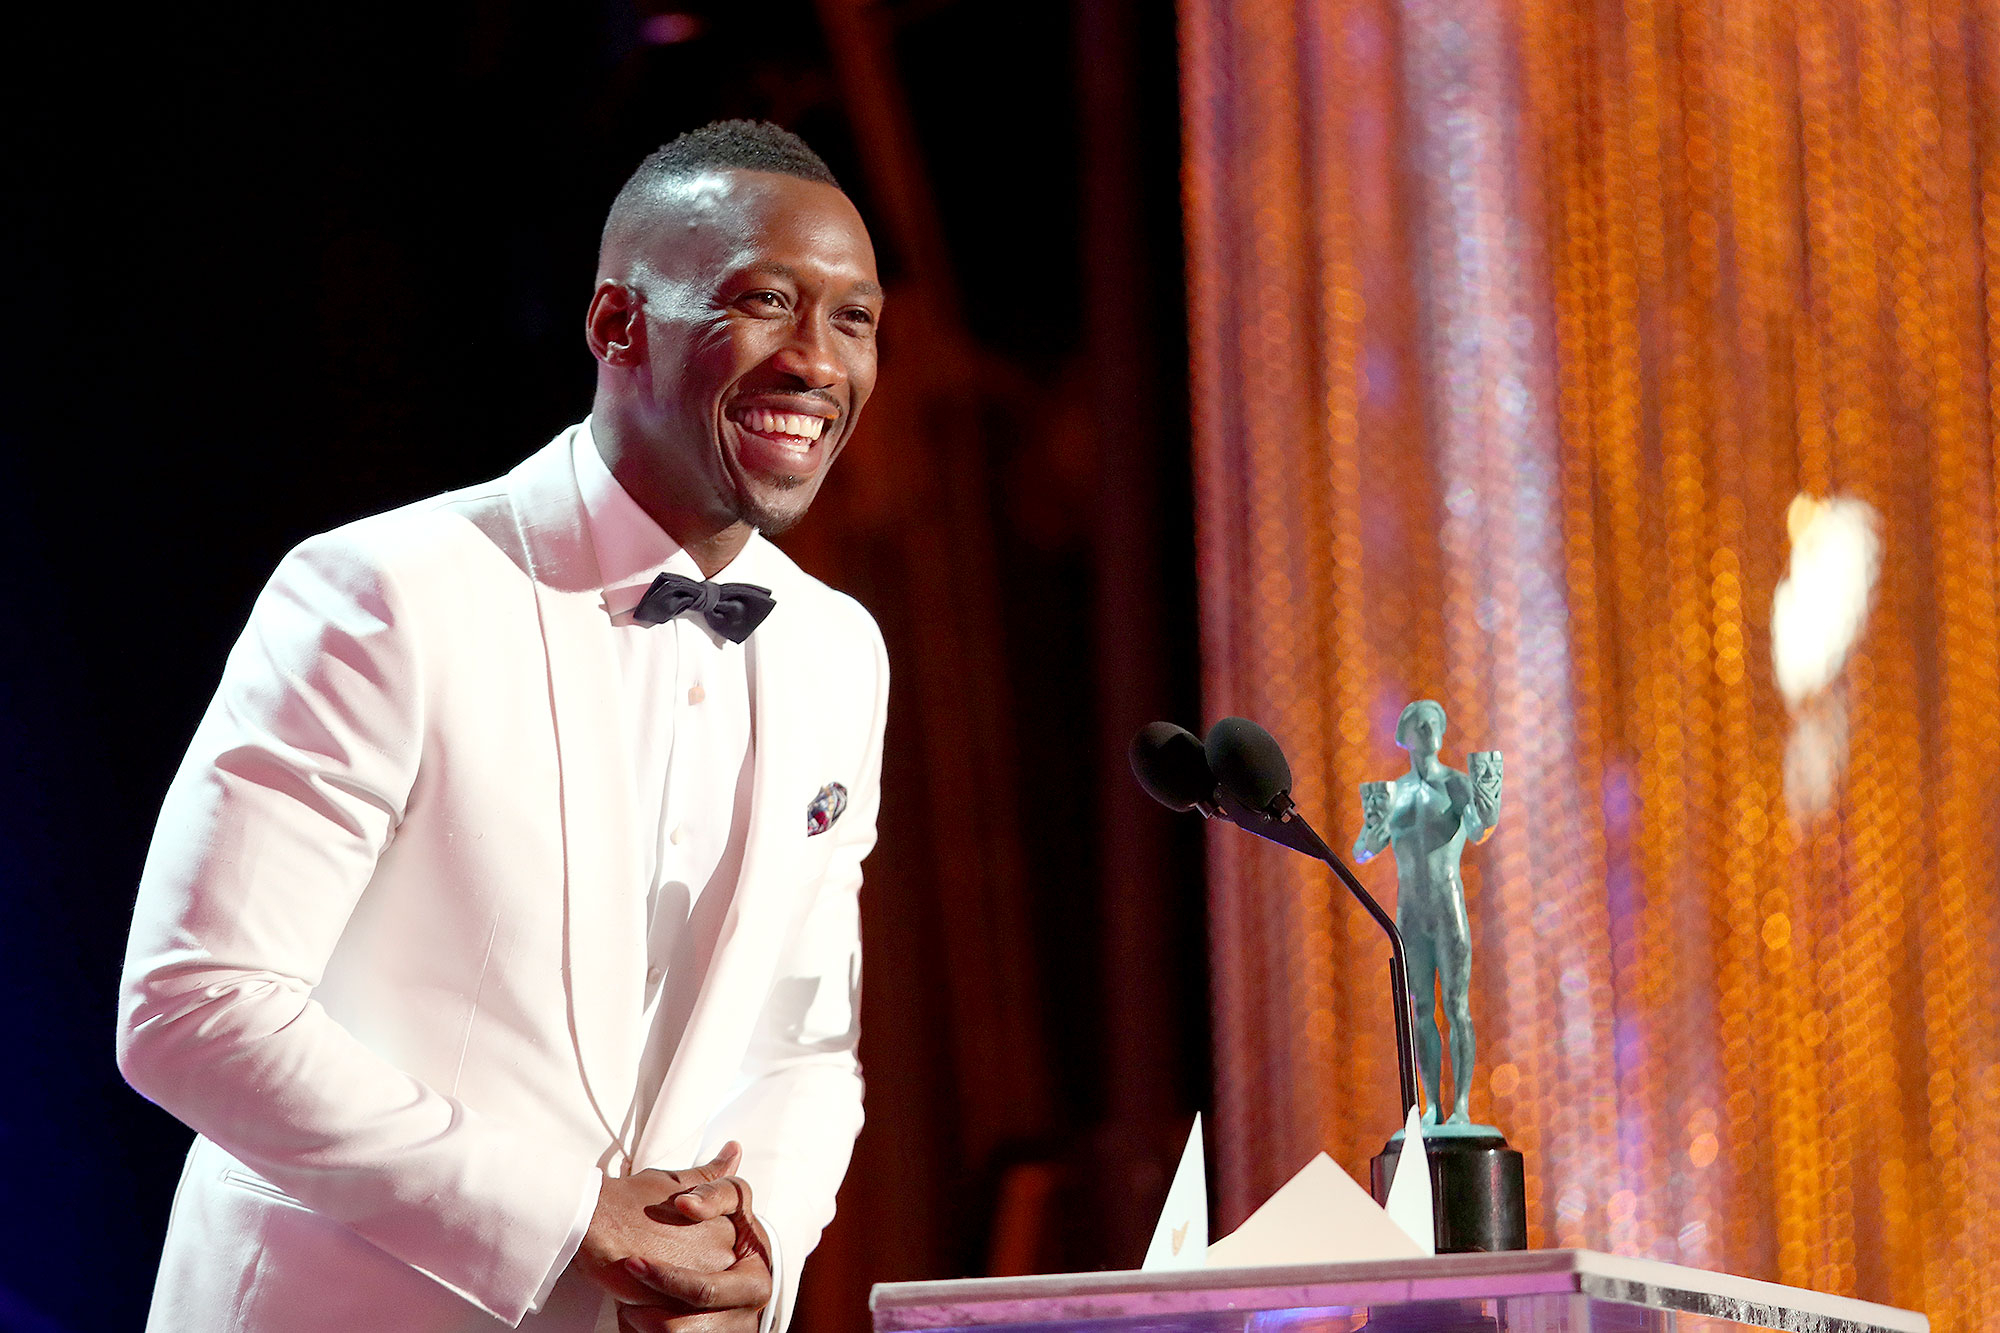 Mahershala Ali, accepting the award for Male Actor in a Supporting Role, during The 23rd Annual Screen Actors Guild Awards at The Shrine Auditorium on January 29, 2017 in Los Angeles, California.